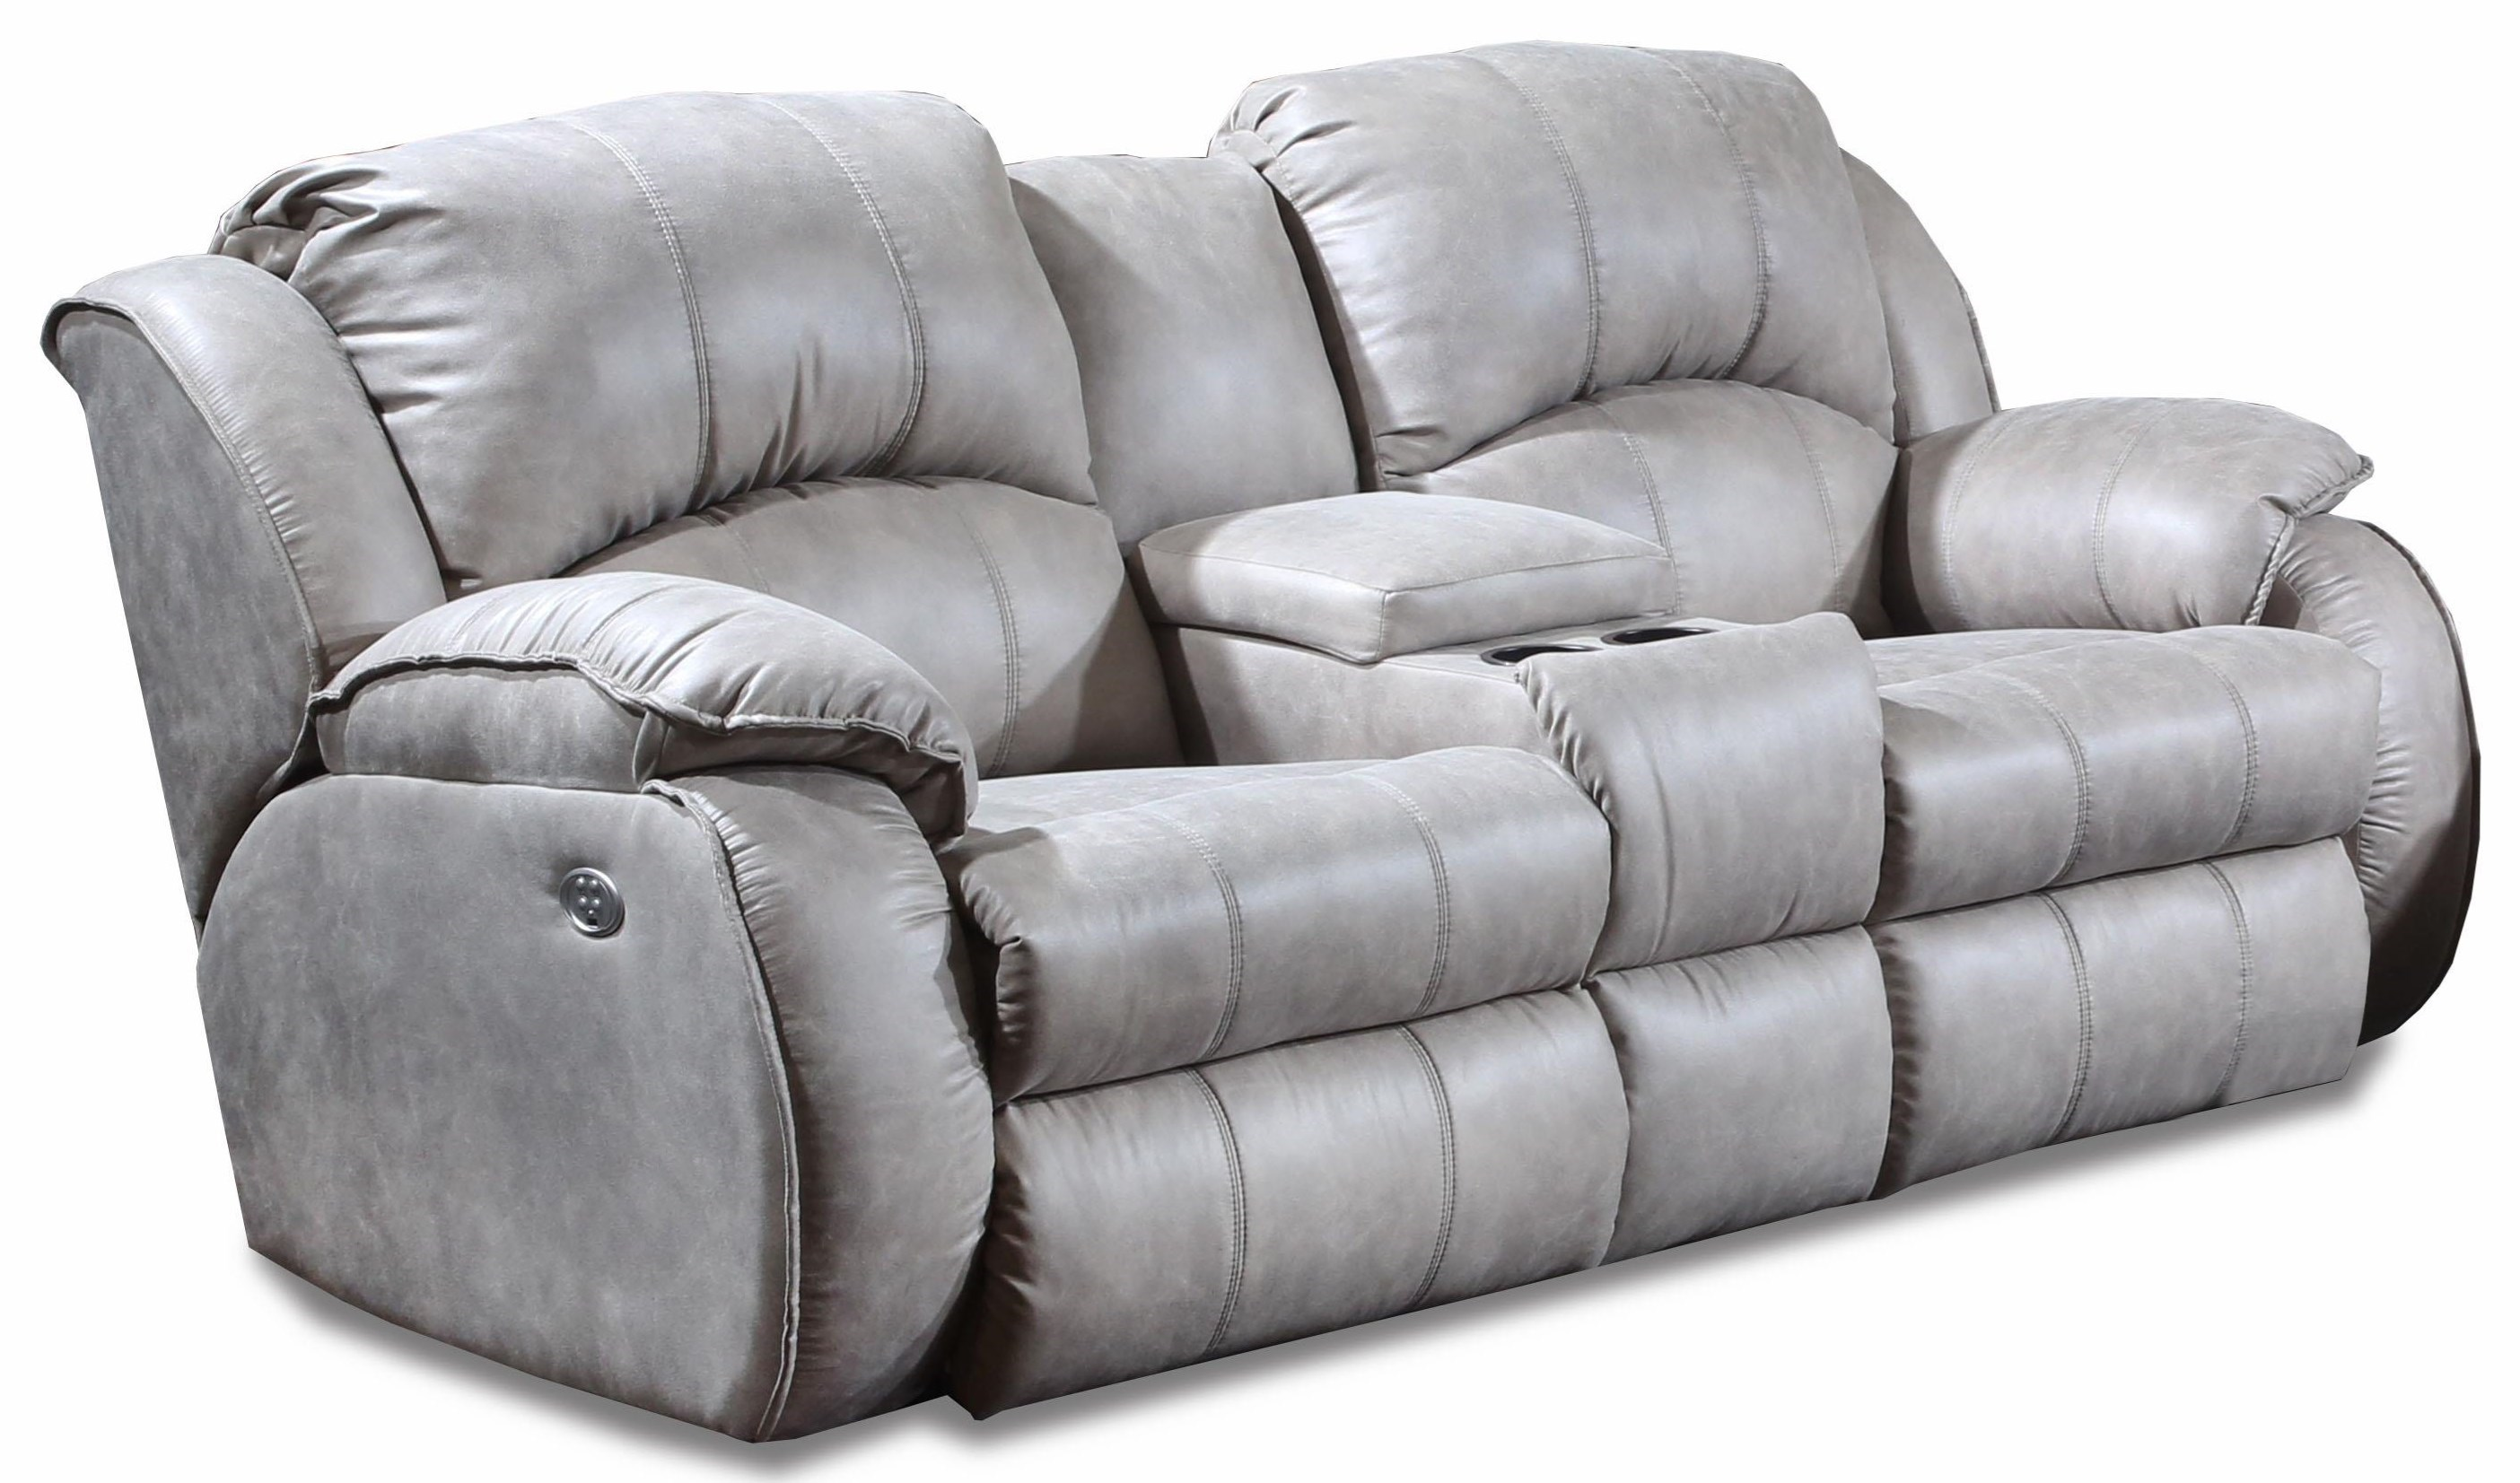 Cagney Comfy And Convenient Console Sofa With Power Reclining Chairs And  Cup Holders By Southern Motion